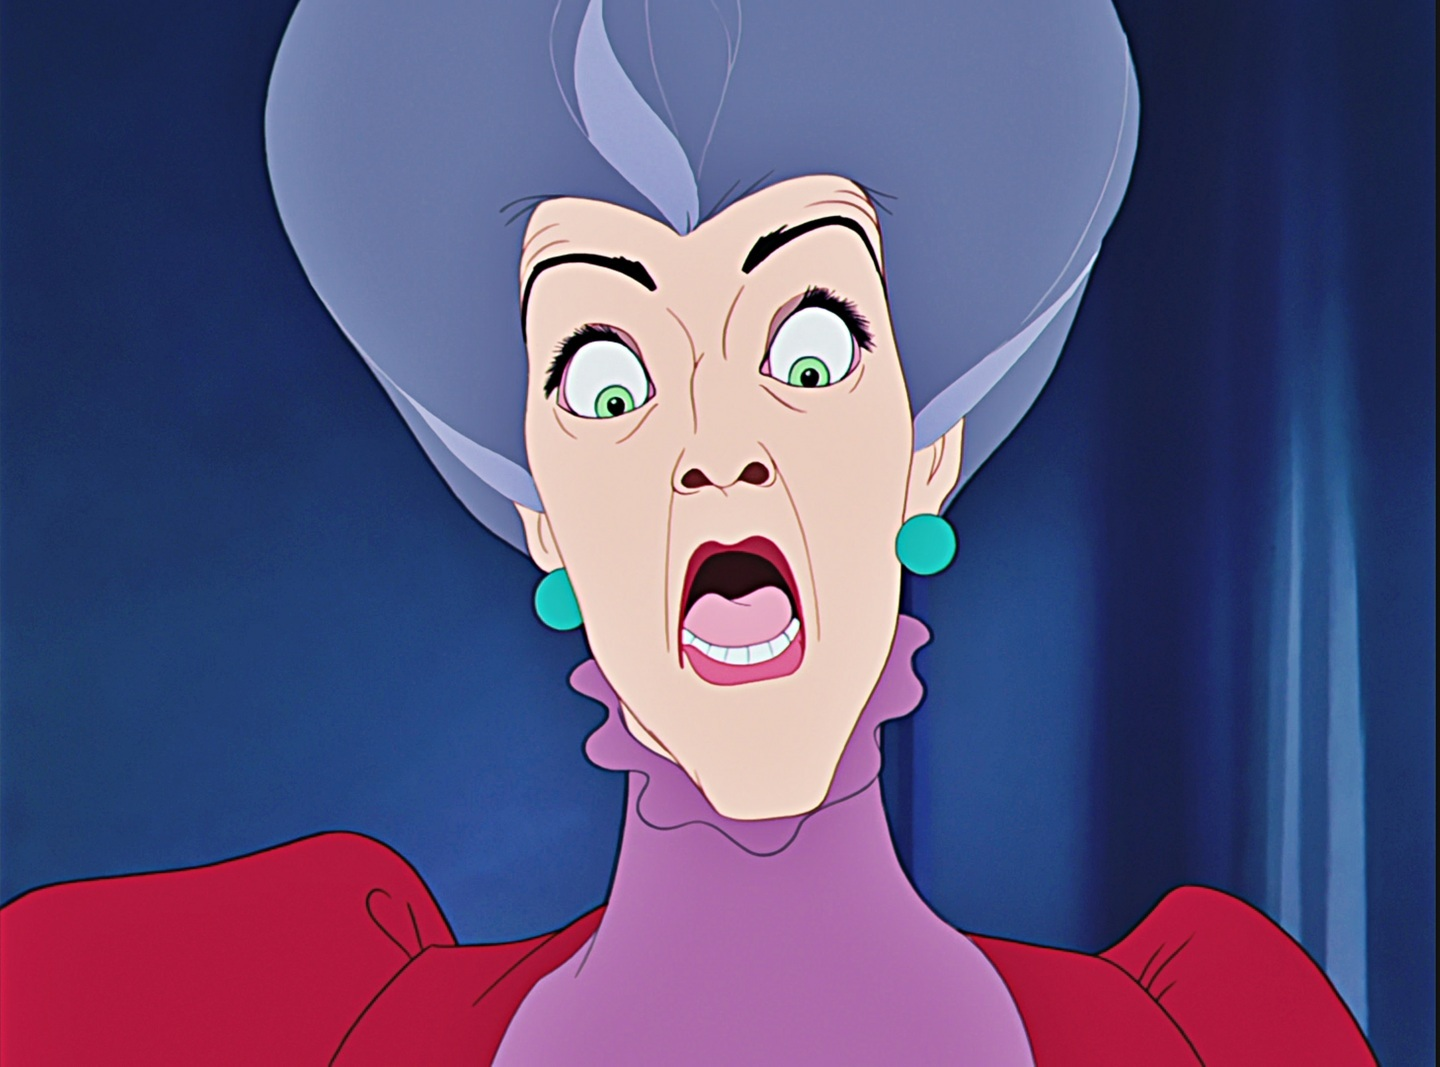 Lady Tremaine is the main antagonist of Disney's Cinderella and its second sequel. She is Cinderella's harsh and selfish wicked stepmother, based on the character of the original fairy tale.